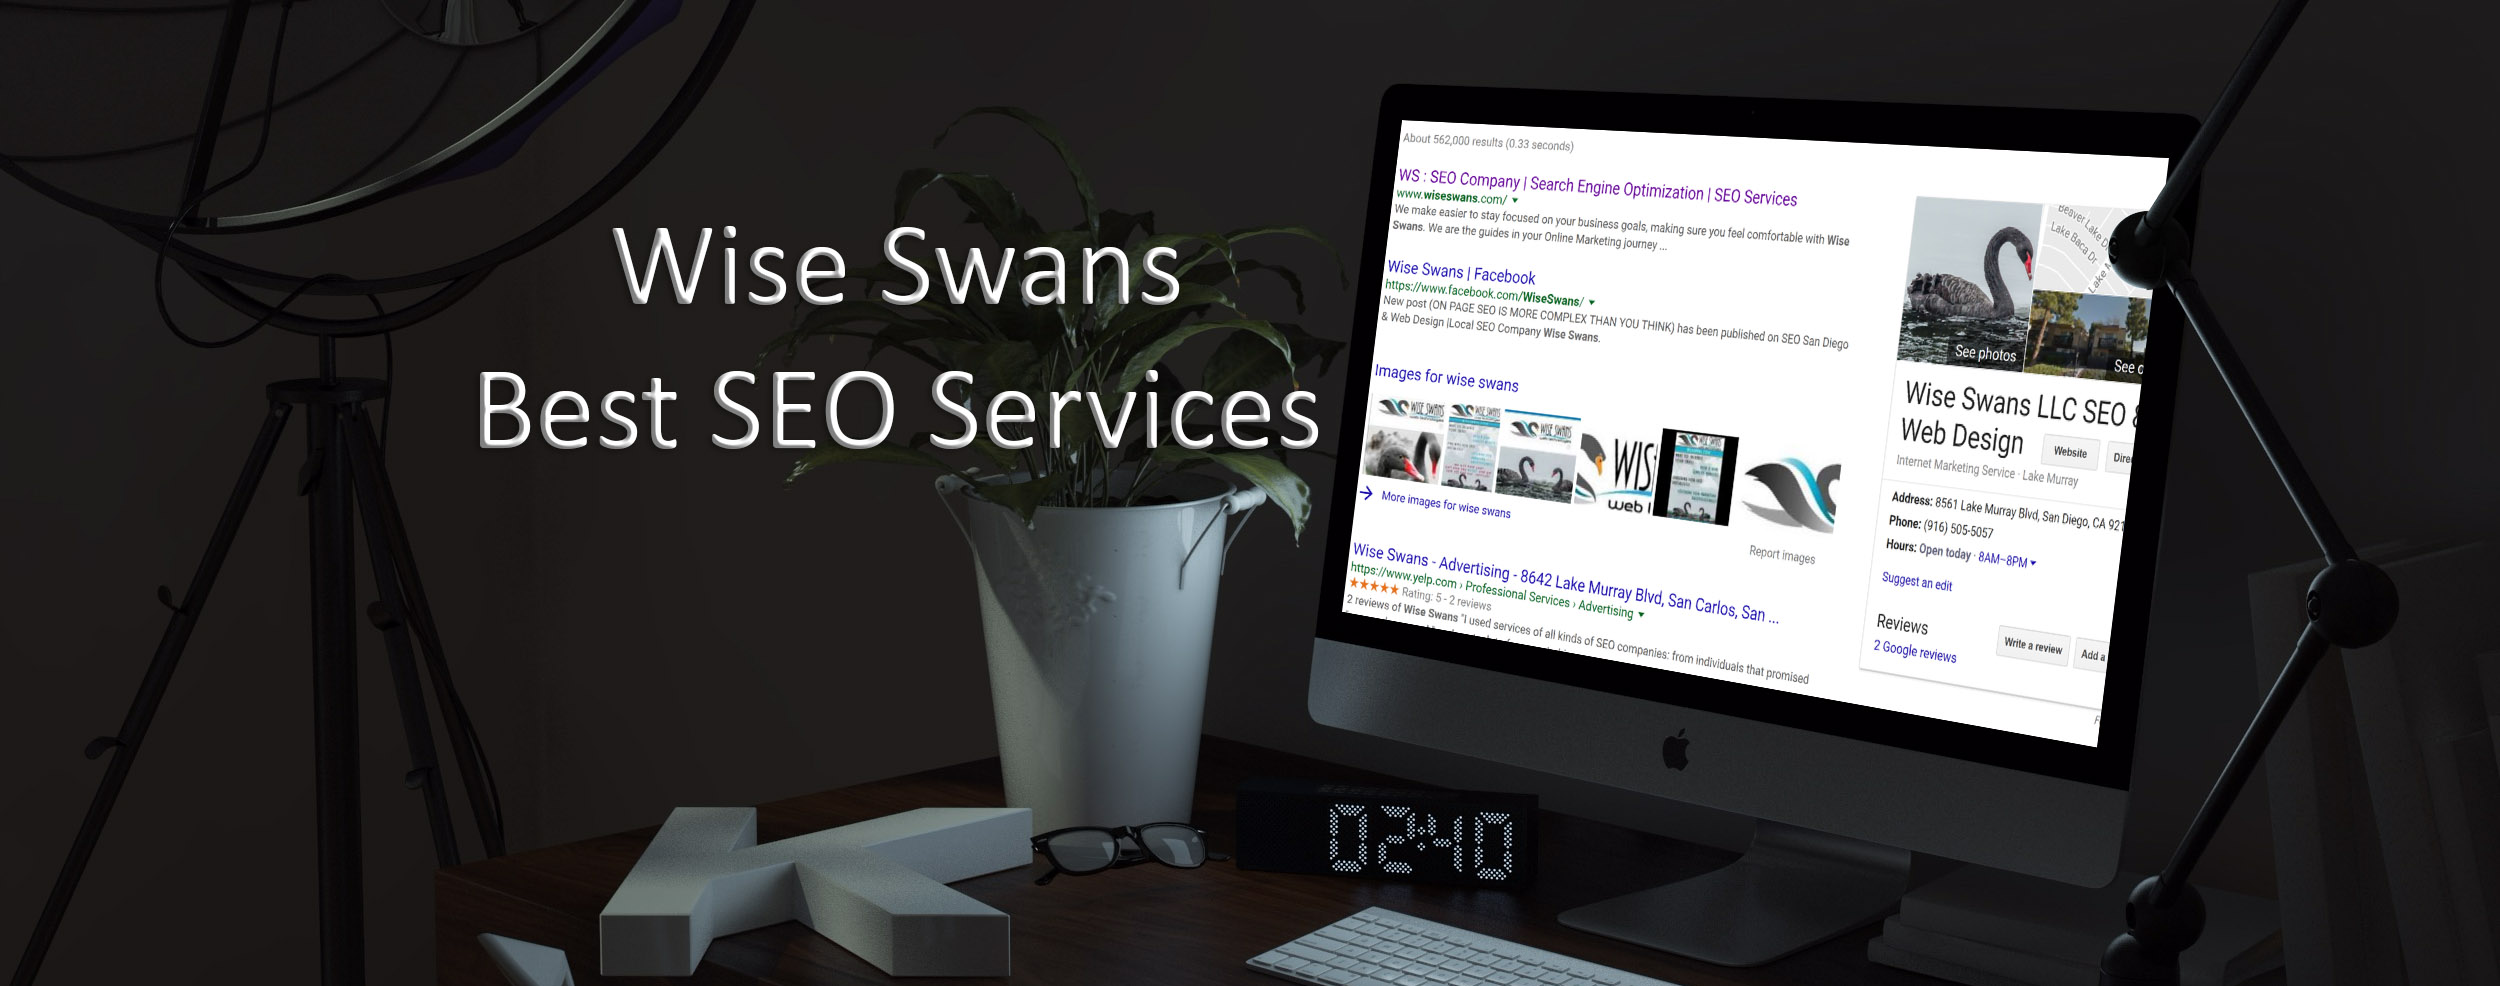 WS : SEO Company | Search Engine Optimization | SEO Services